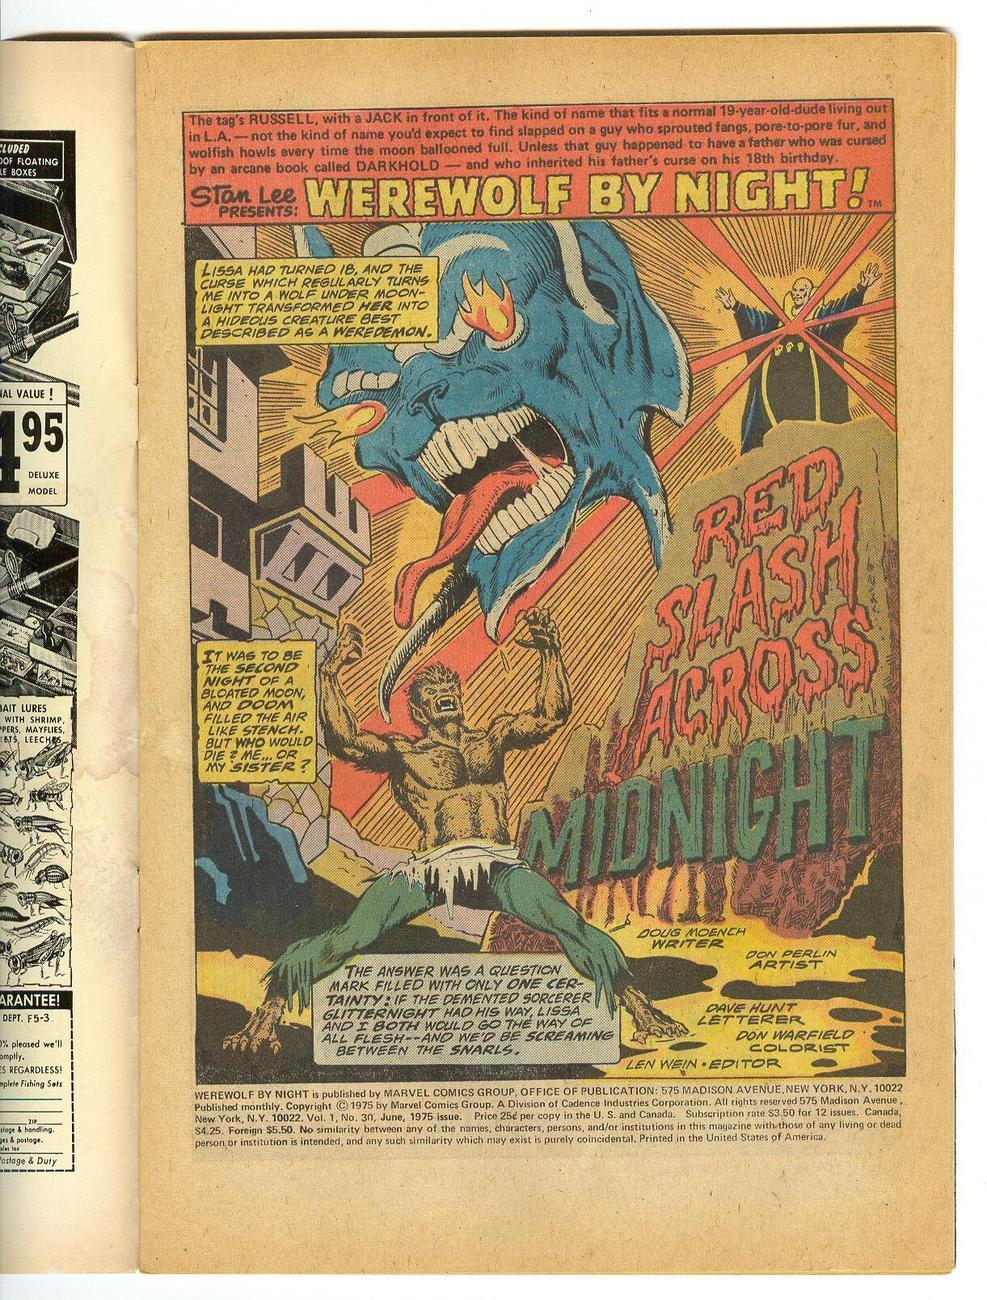 Marvel 25 cent Comic WEREWOLF By NIGHT No 30 June 1975 Stan Lee RED SLASH